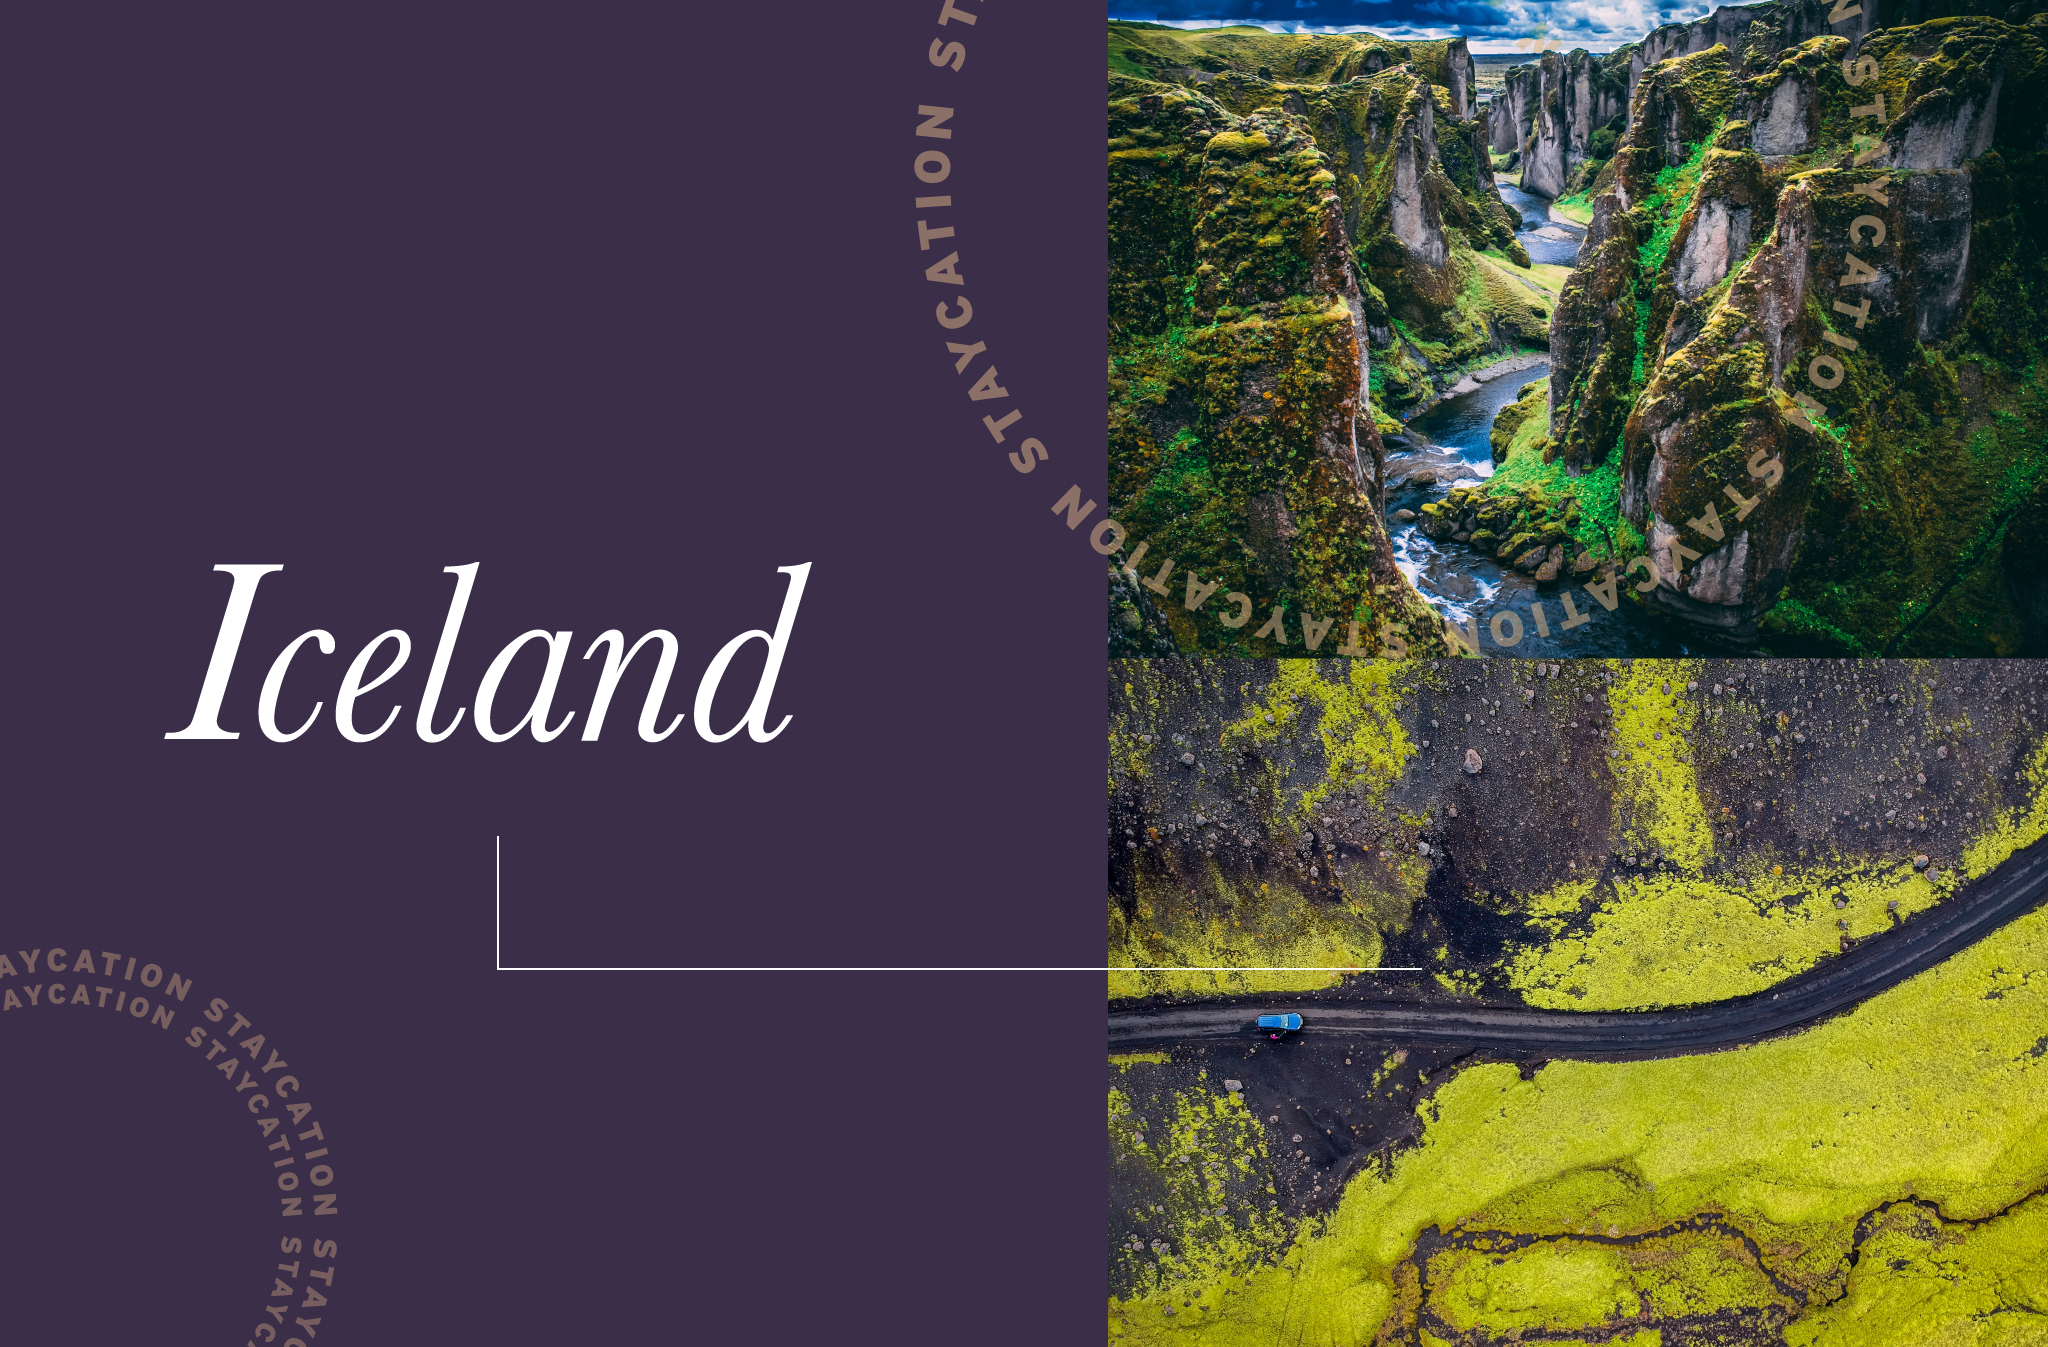 Iceland: An Imaginary Vacation